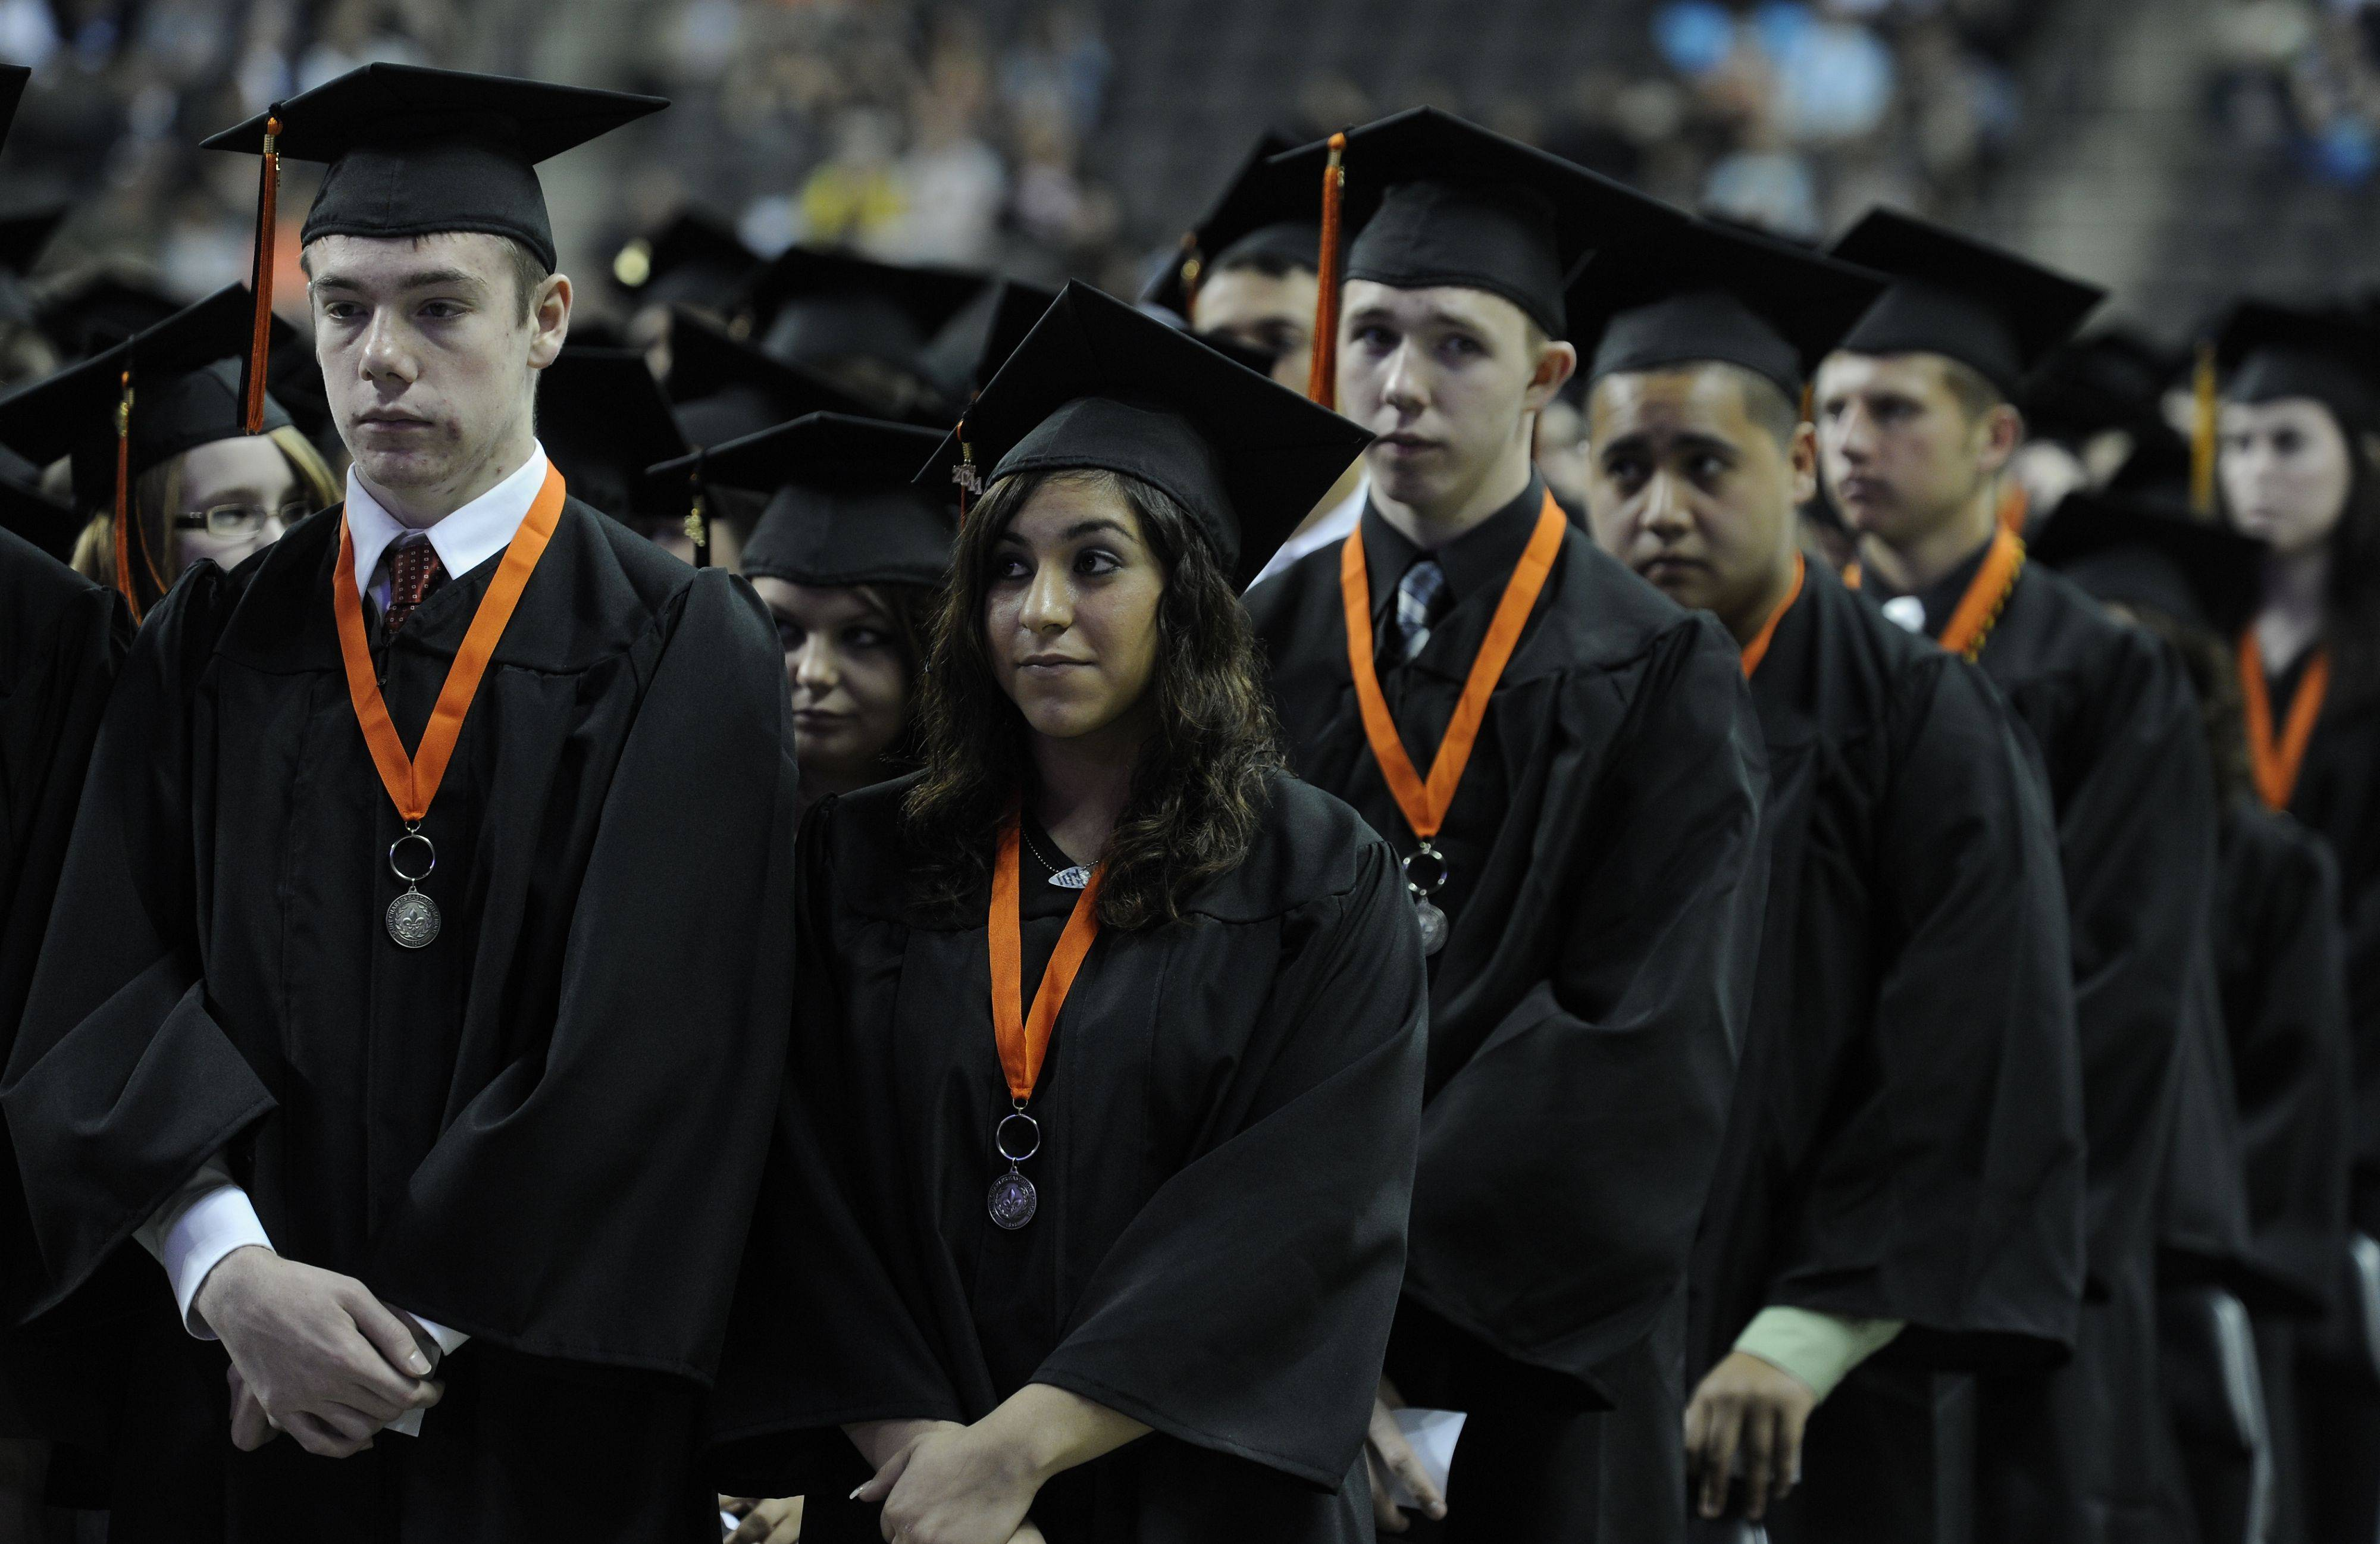 Images from the St. Charles East High School graduation Sunday, May 29, 2011.